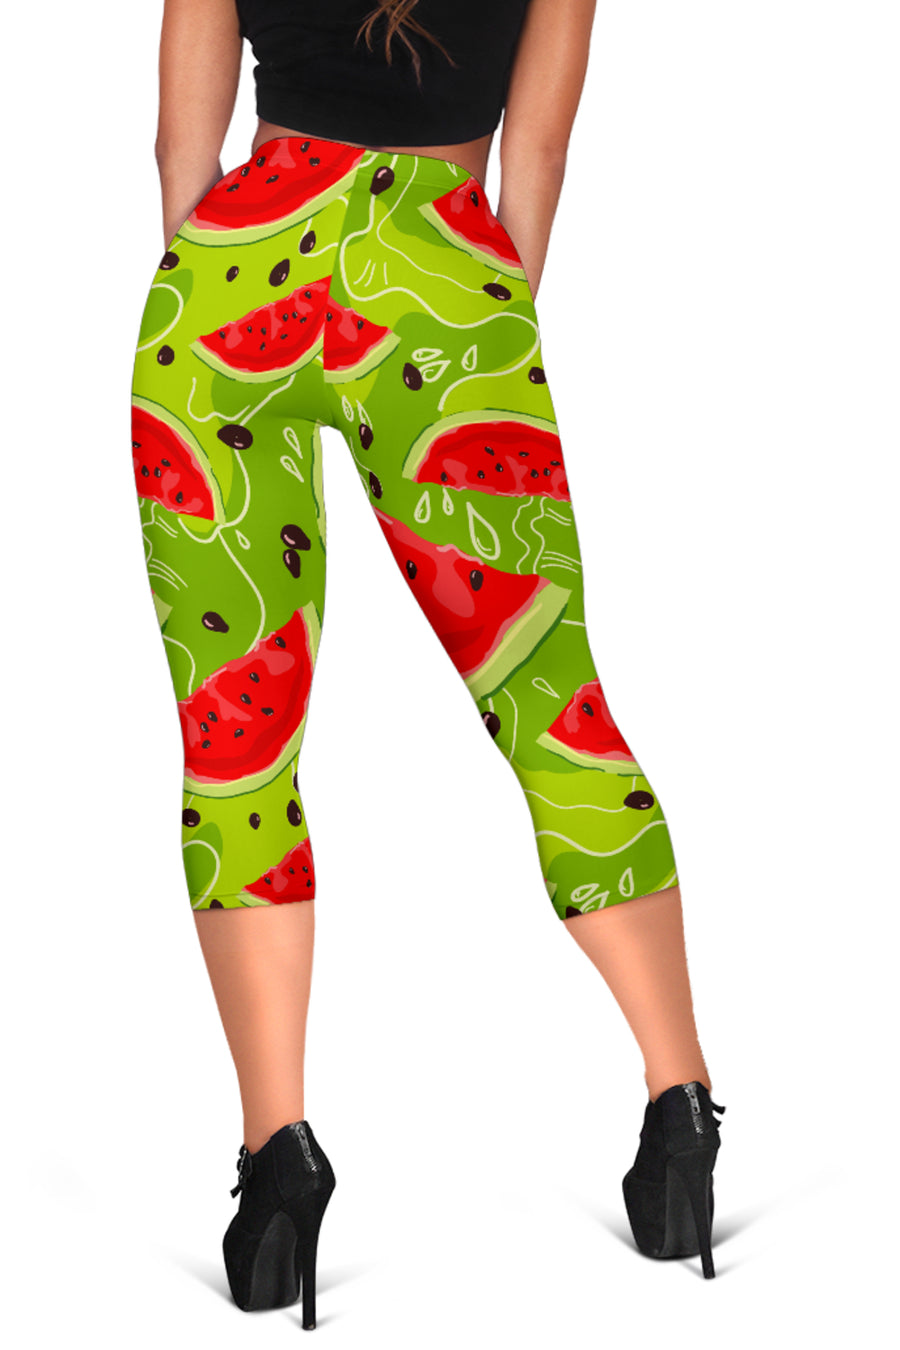 Yummy Watermelon Pieces Pattern Print Women's Capri Leggings